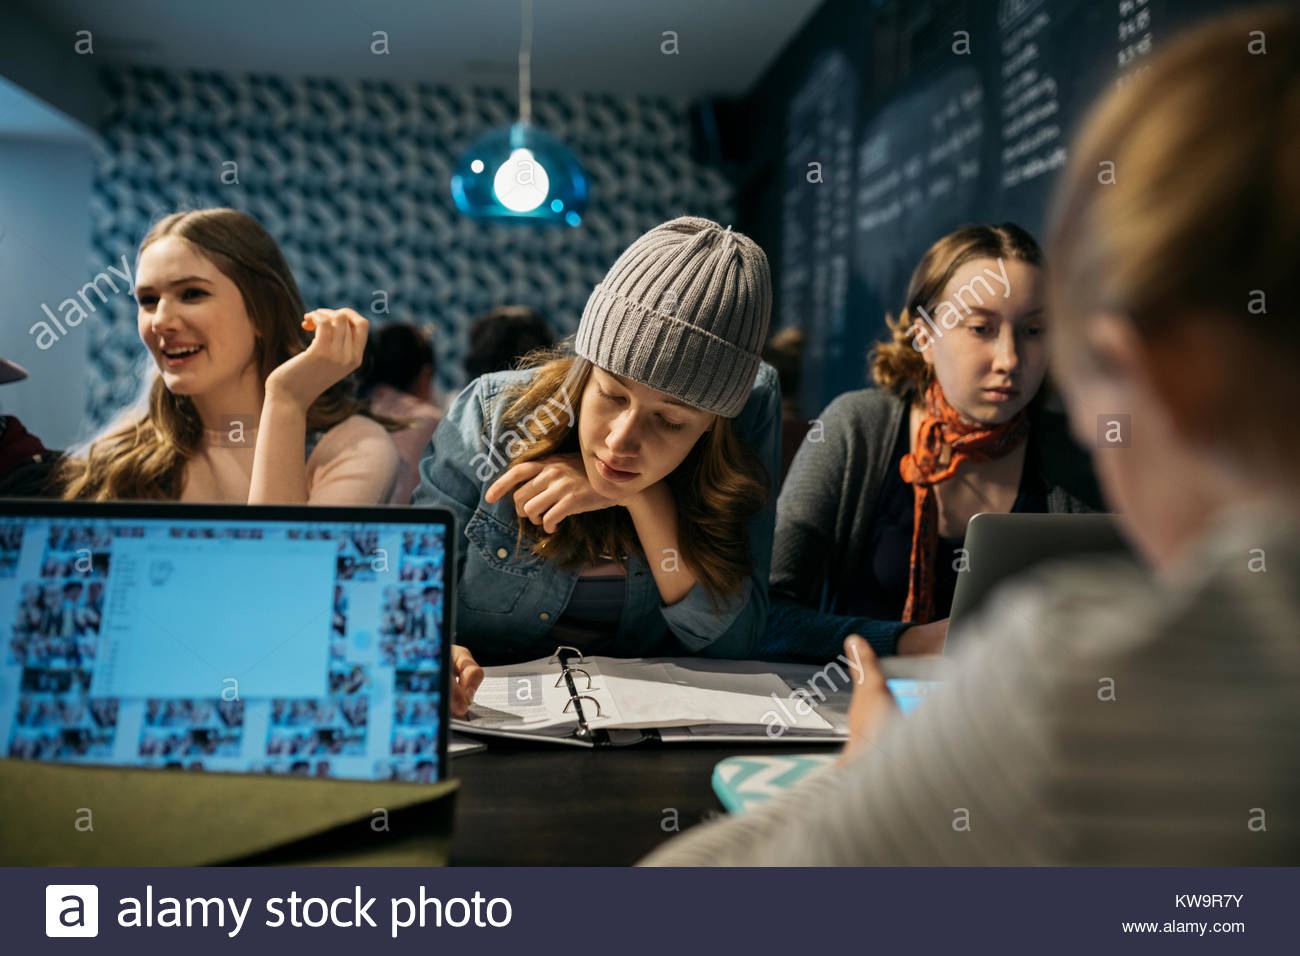 Girl high school students studying in cafe - Stock Image